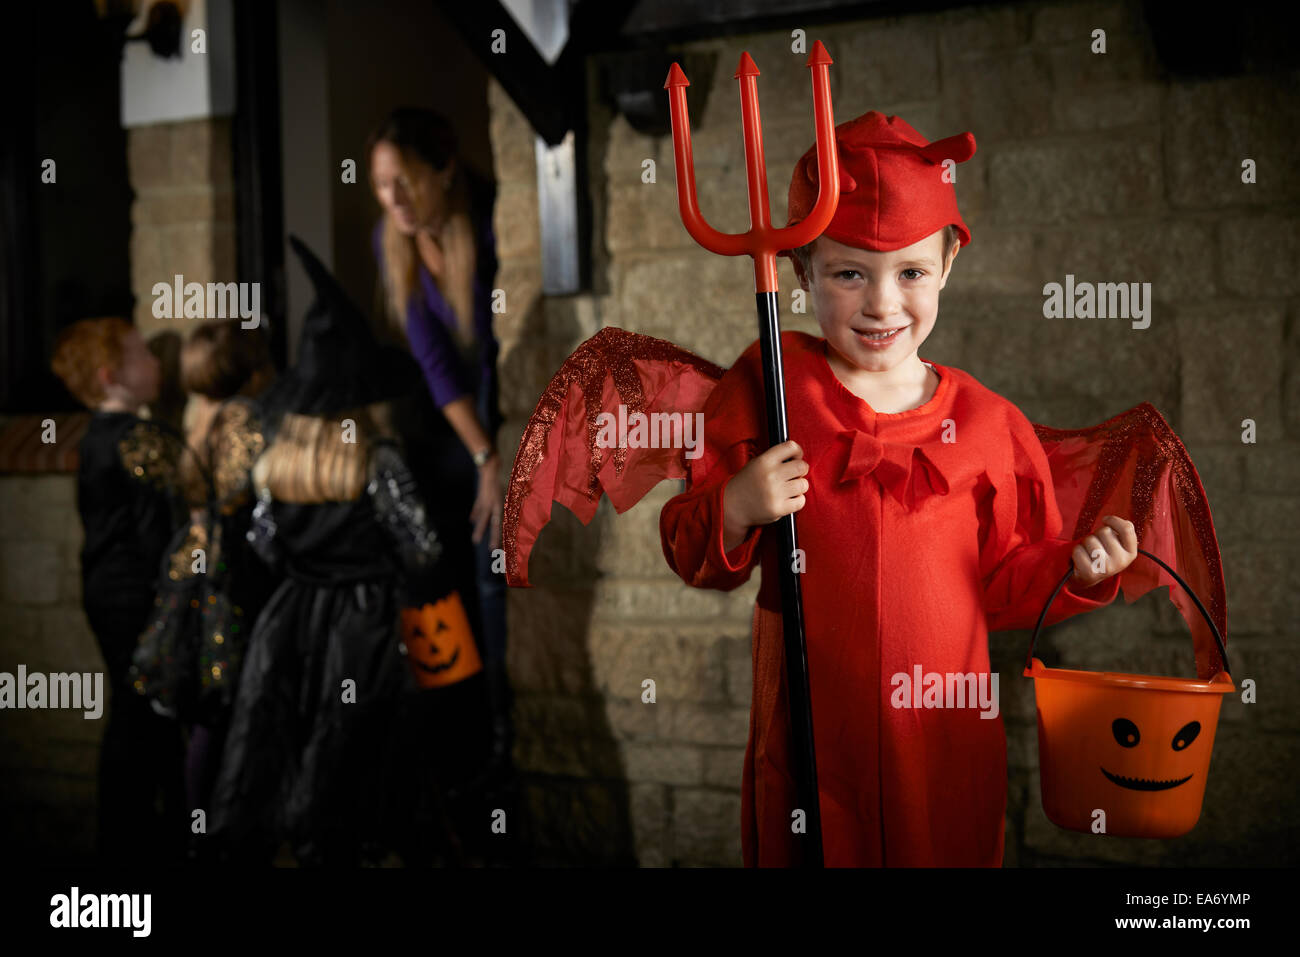 Halloween Party With Children Trick Or Treating In Costume - Stock Image